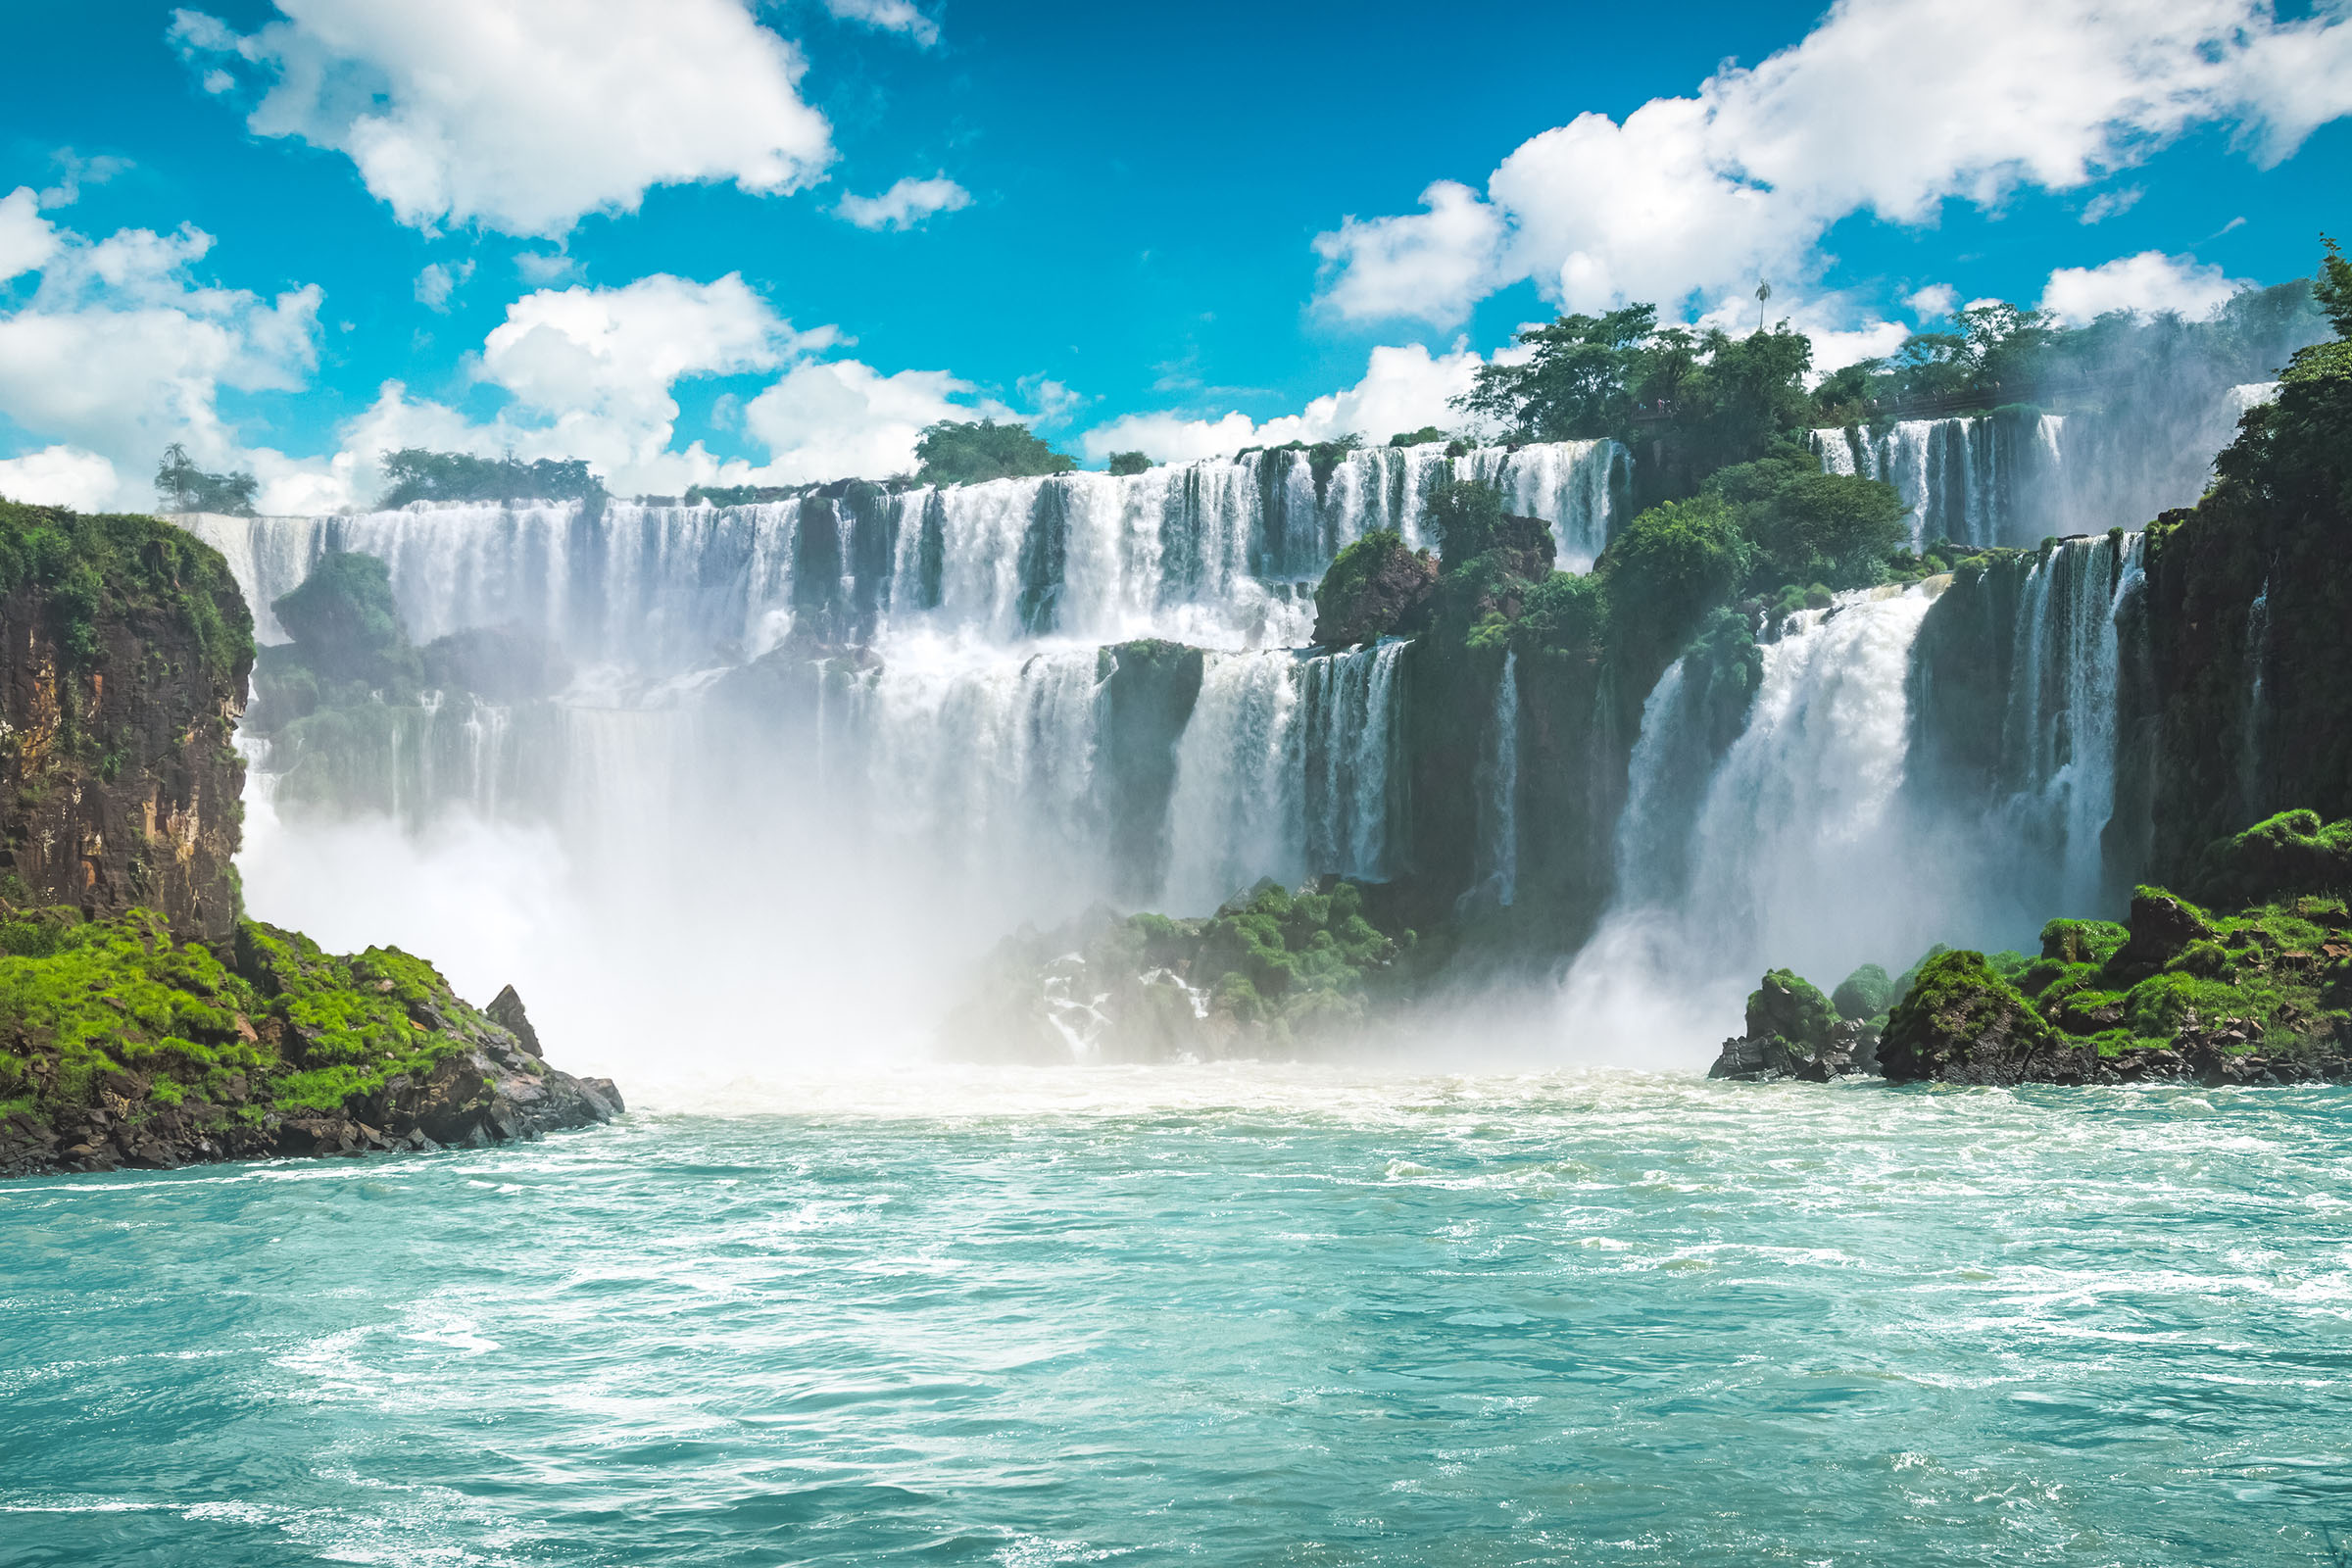 Brazil Iguazu Waterfalls